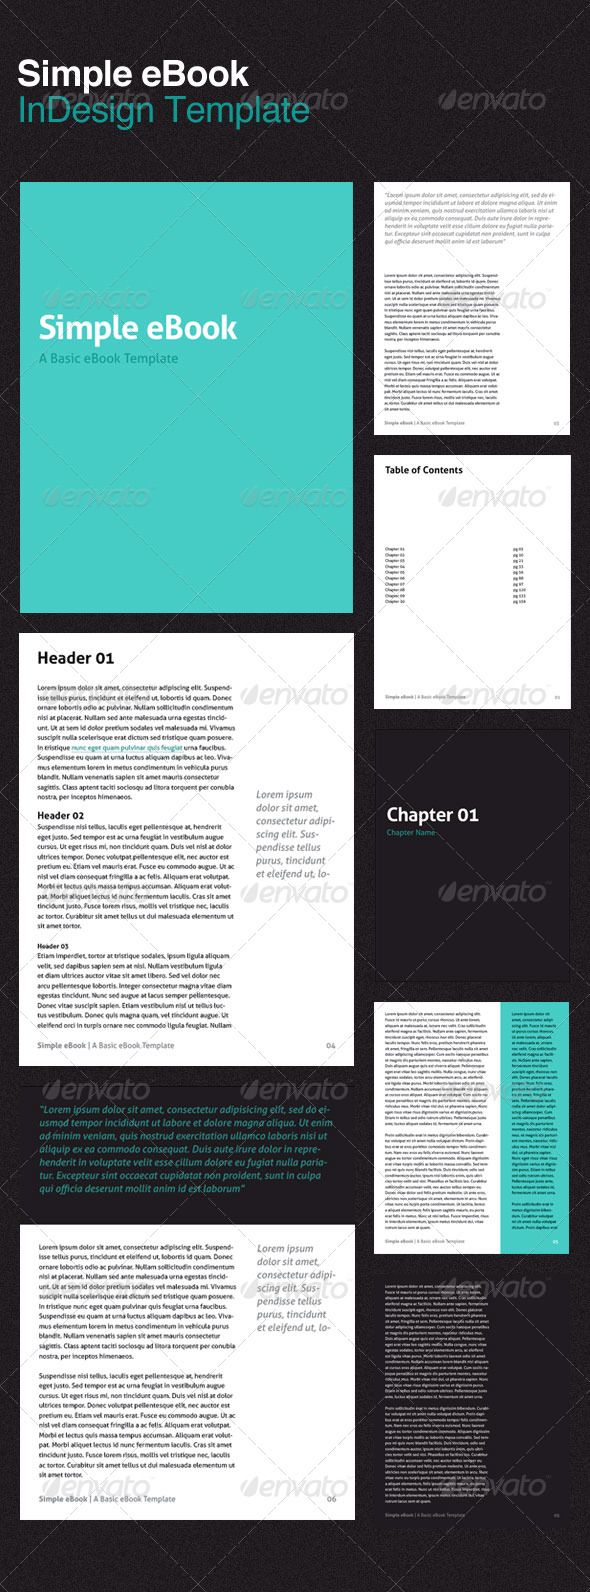 Simple Ebook Template Pinterest Italic Font Golden Ratio And